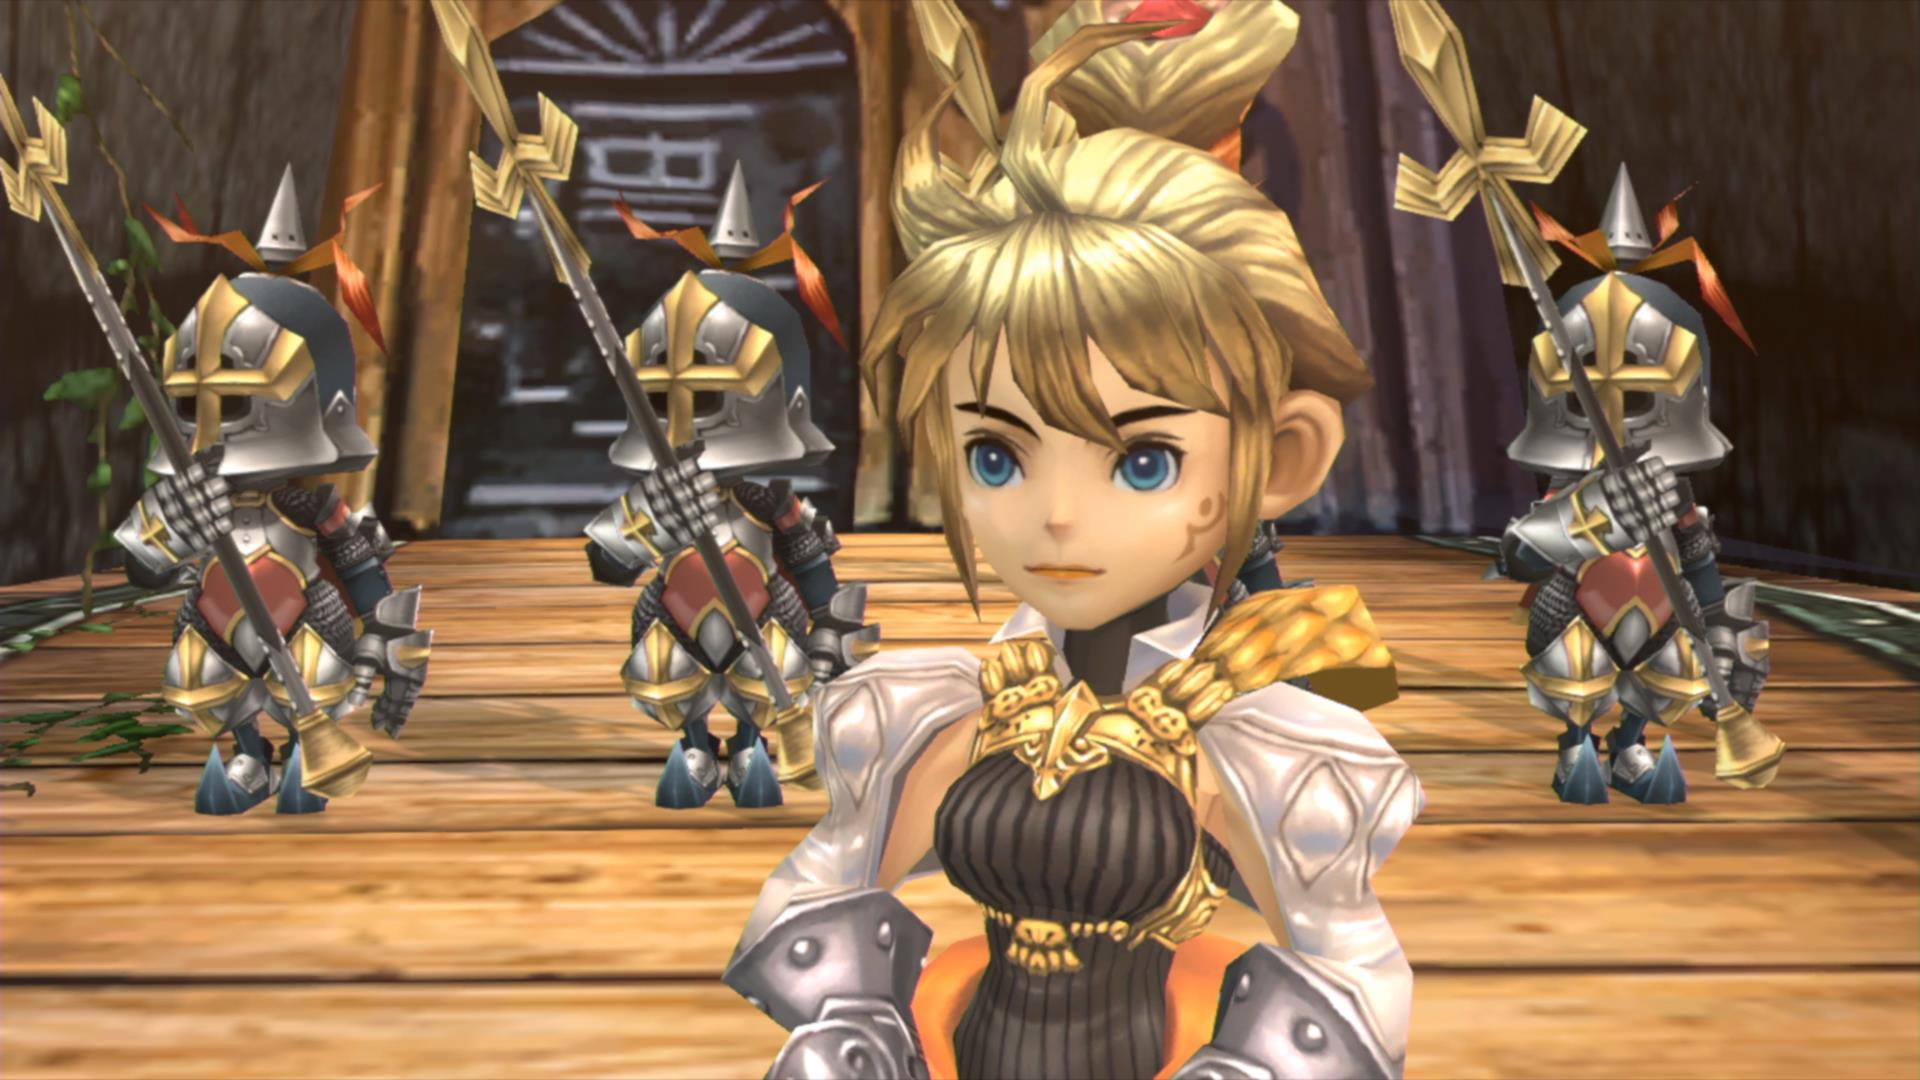 Two characters look off-screen in Final Fantasy Crystal Chronicles Remastered.